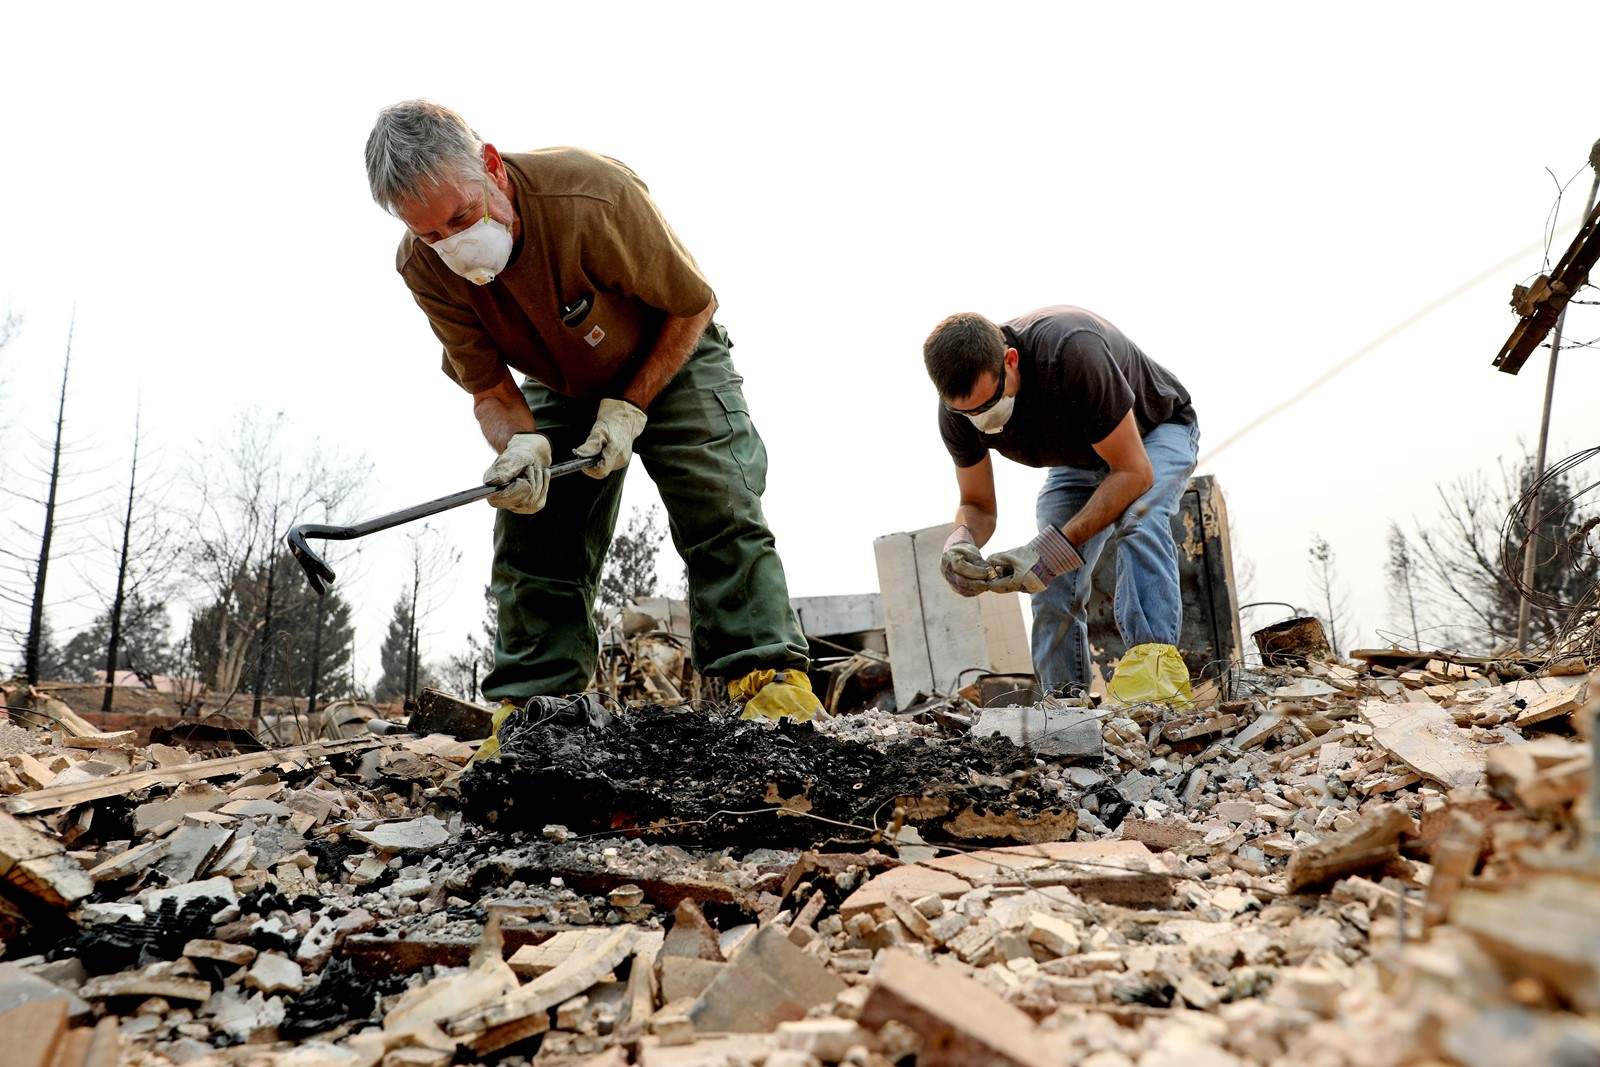 Dan Kissick, left, and his son Jeff sift through the remains of his home in Redding, California, lost to the Carr fire. — Photograph: Gary Coronado/Los Angeles Times.